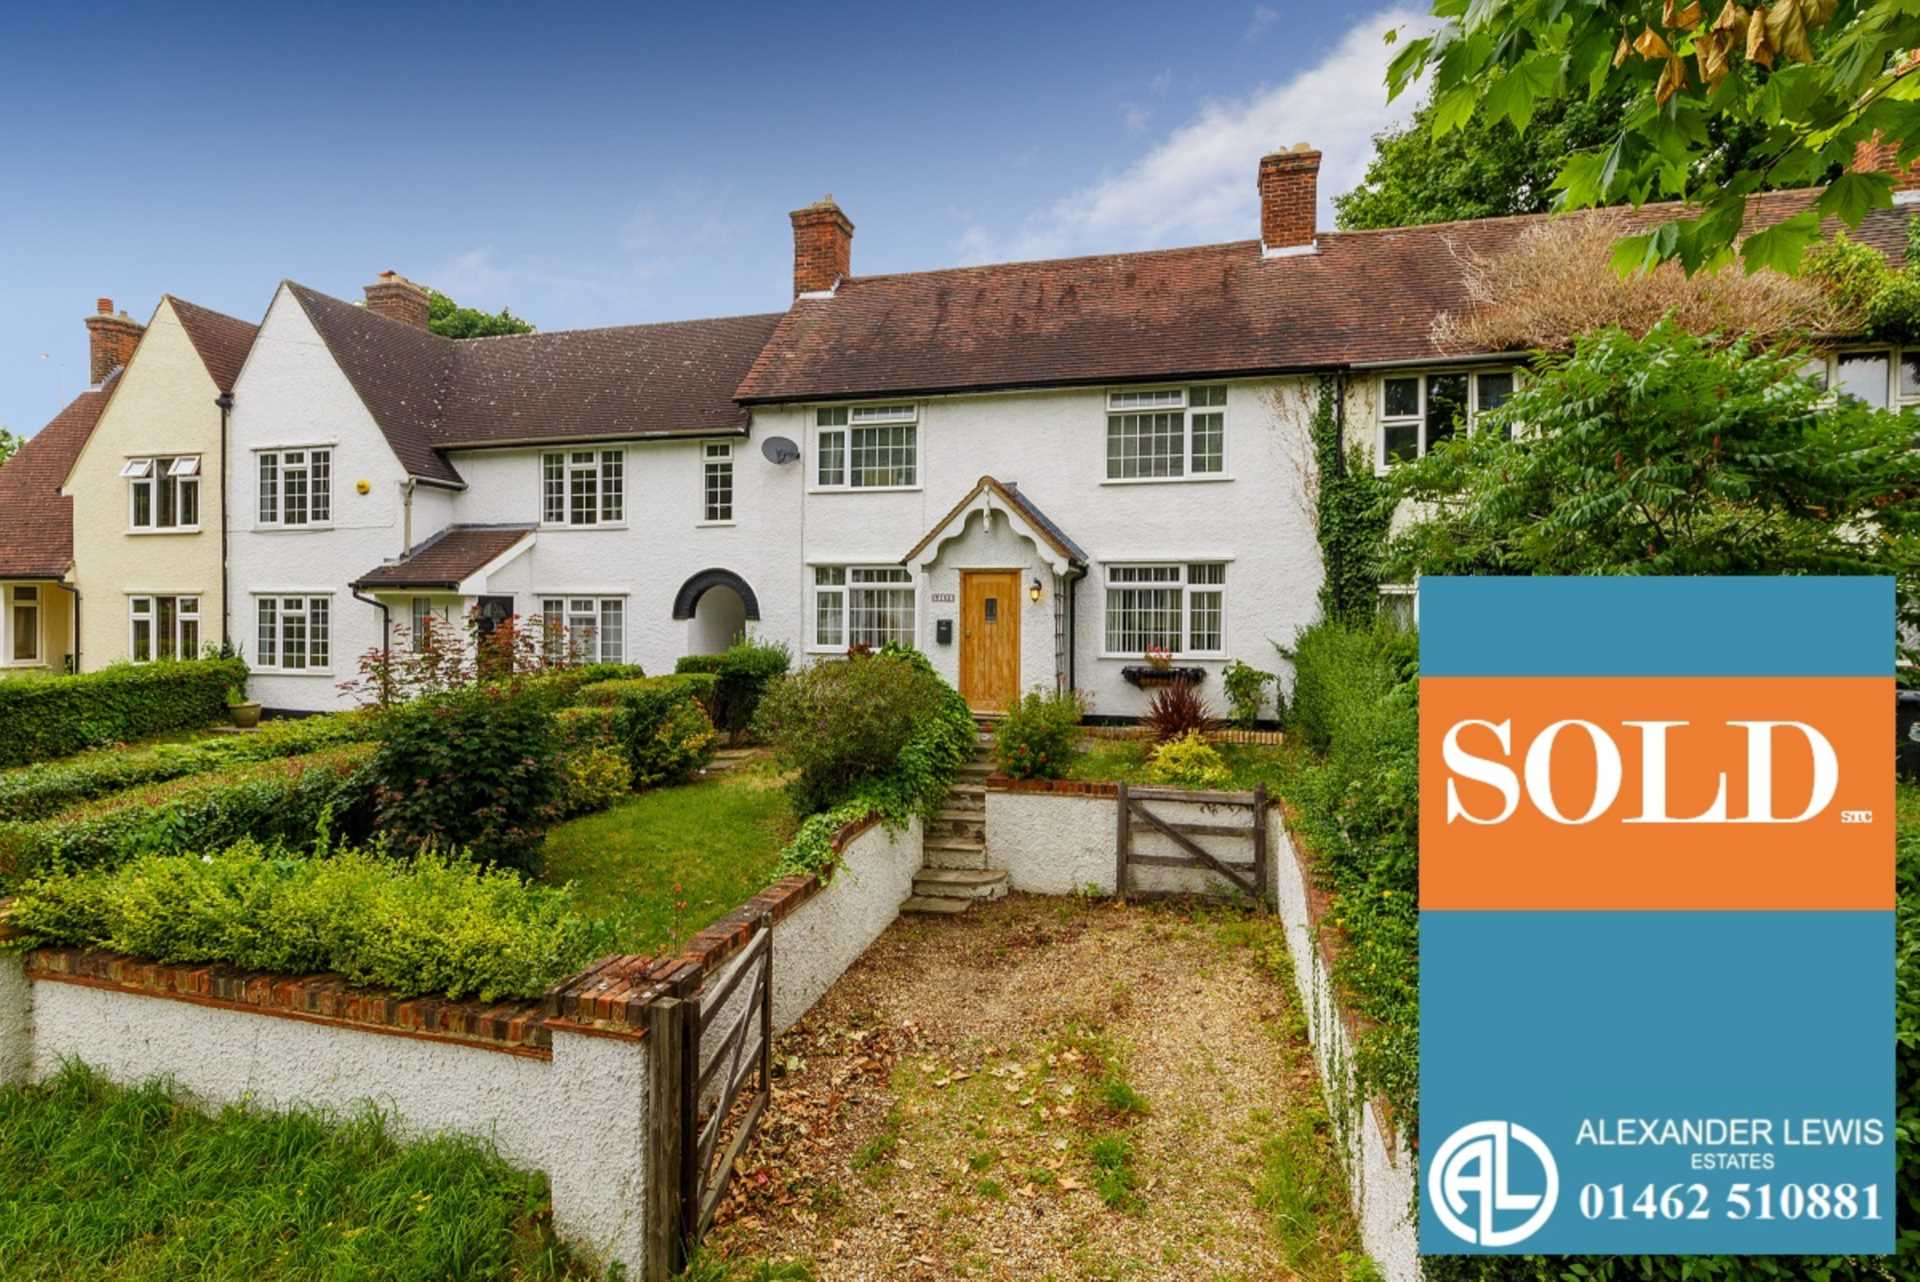 SOLD within a week!